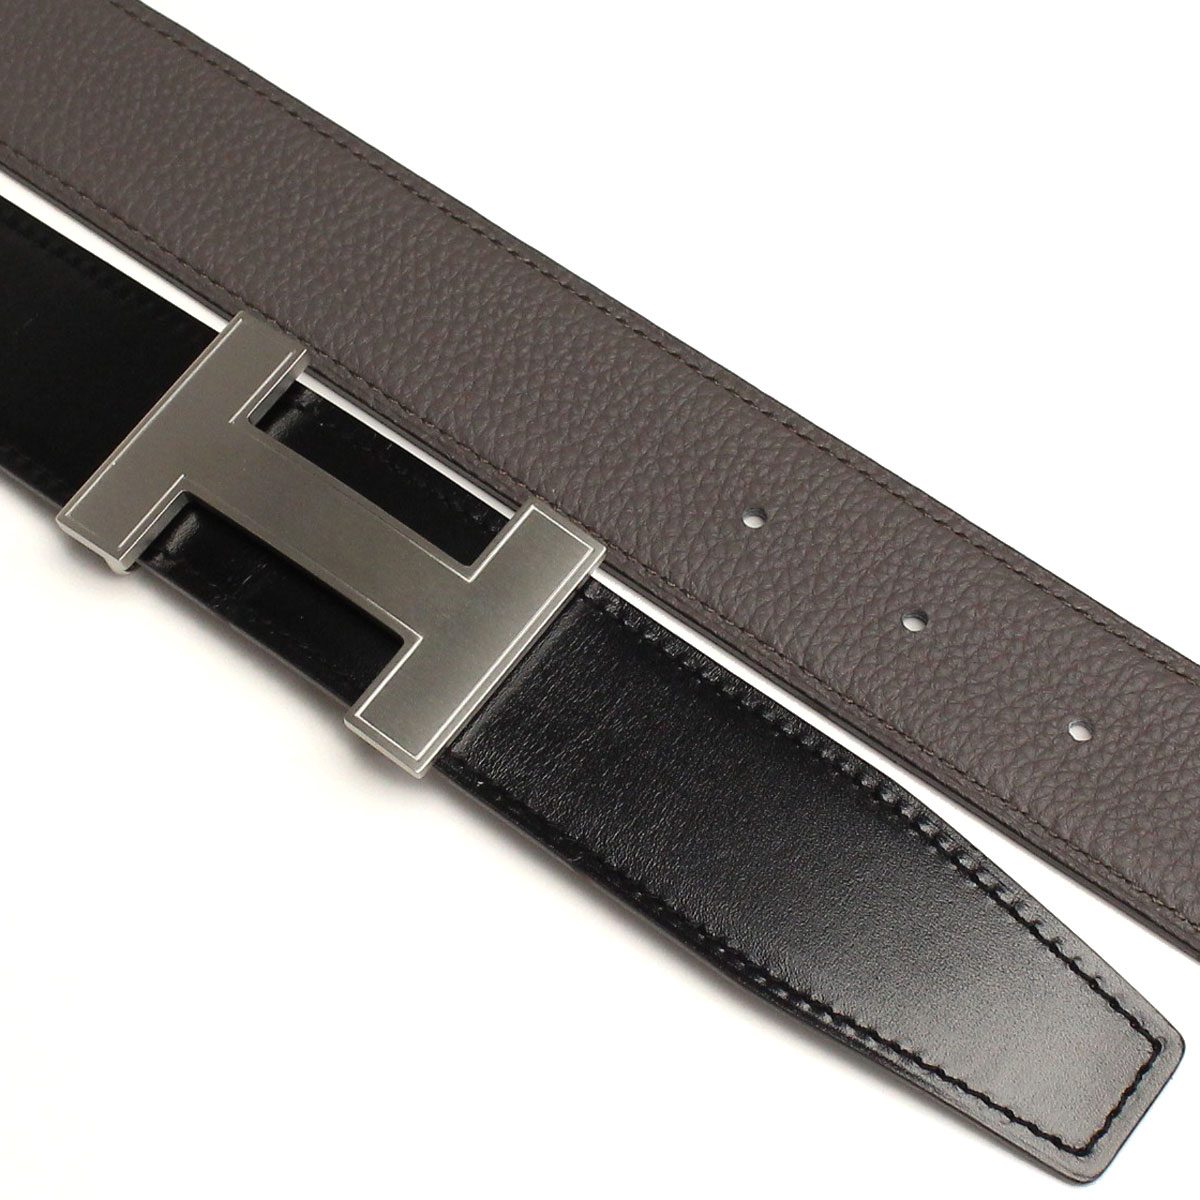 Hermes (HERMES) mens belt QUIZZ black / gray( taxfree/send by EMS/authentic/A brand new item )